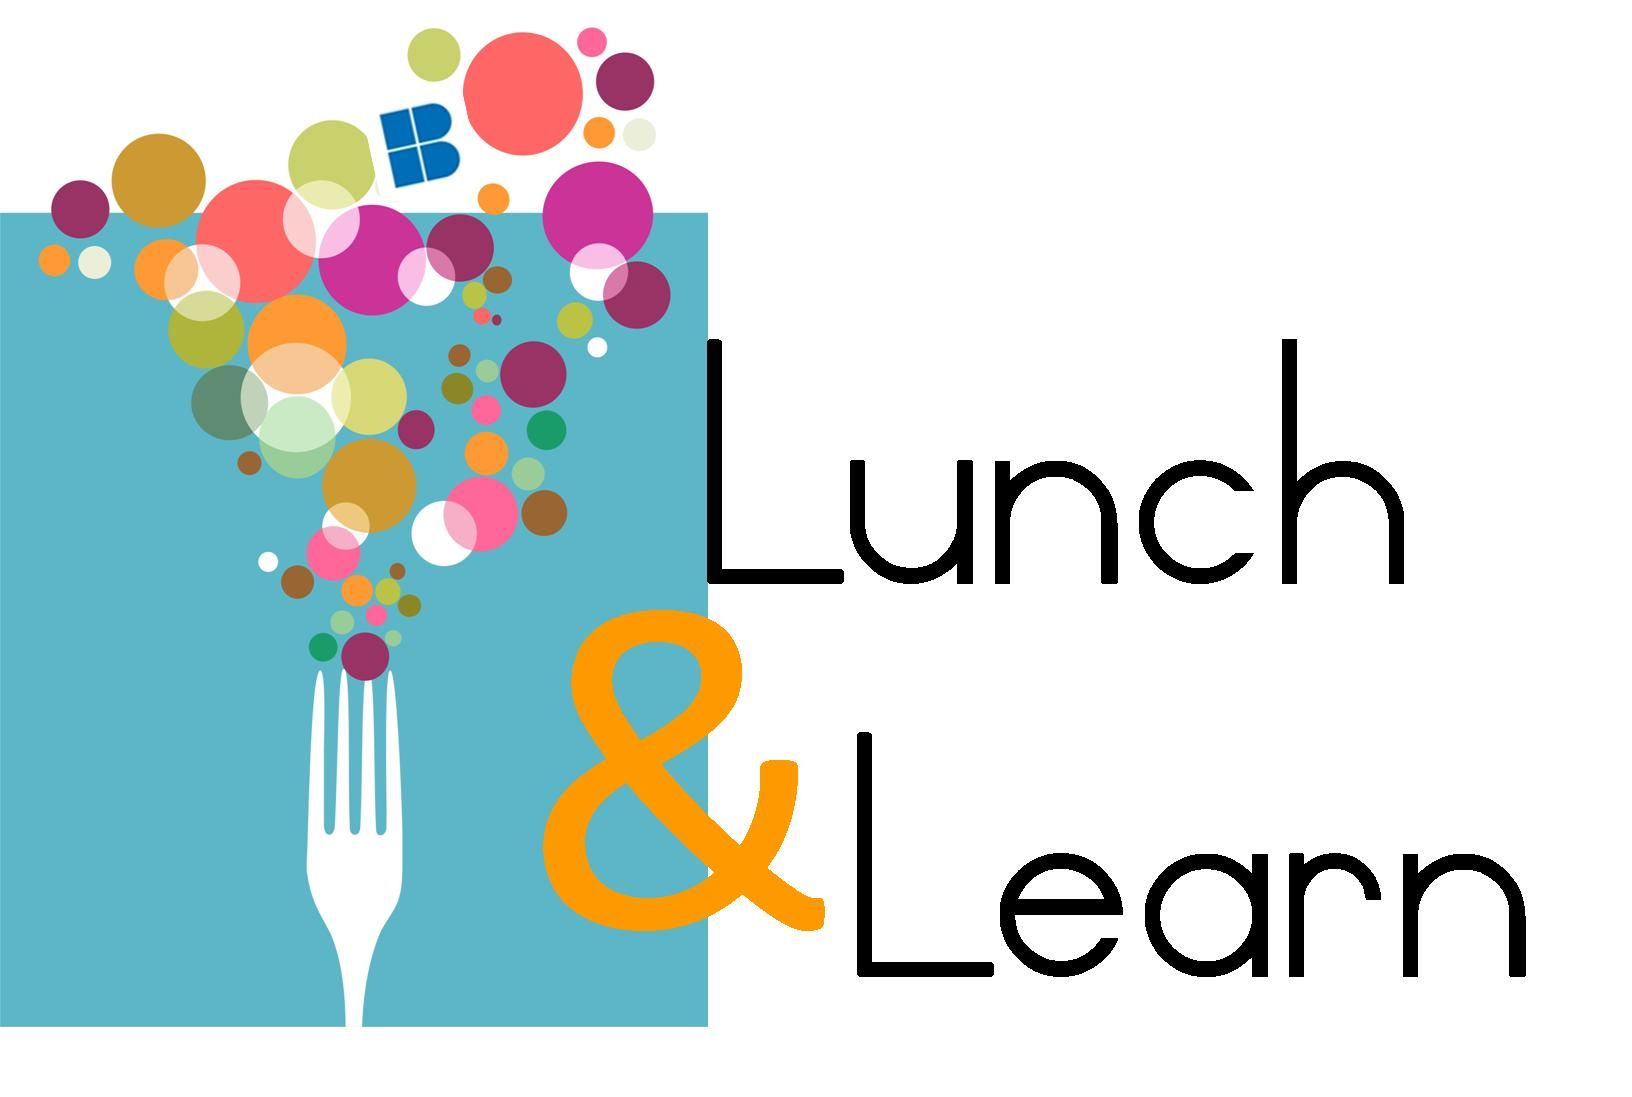 Lunch clipart corporate lunch.  awesome and learn